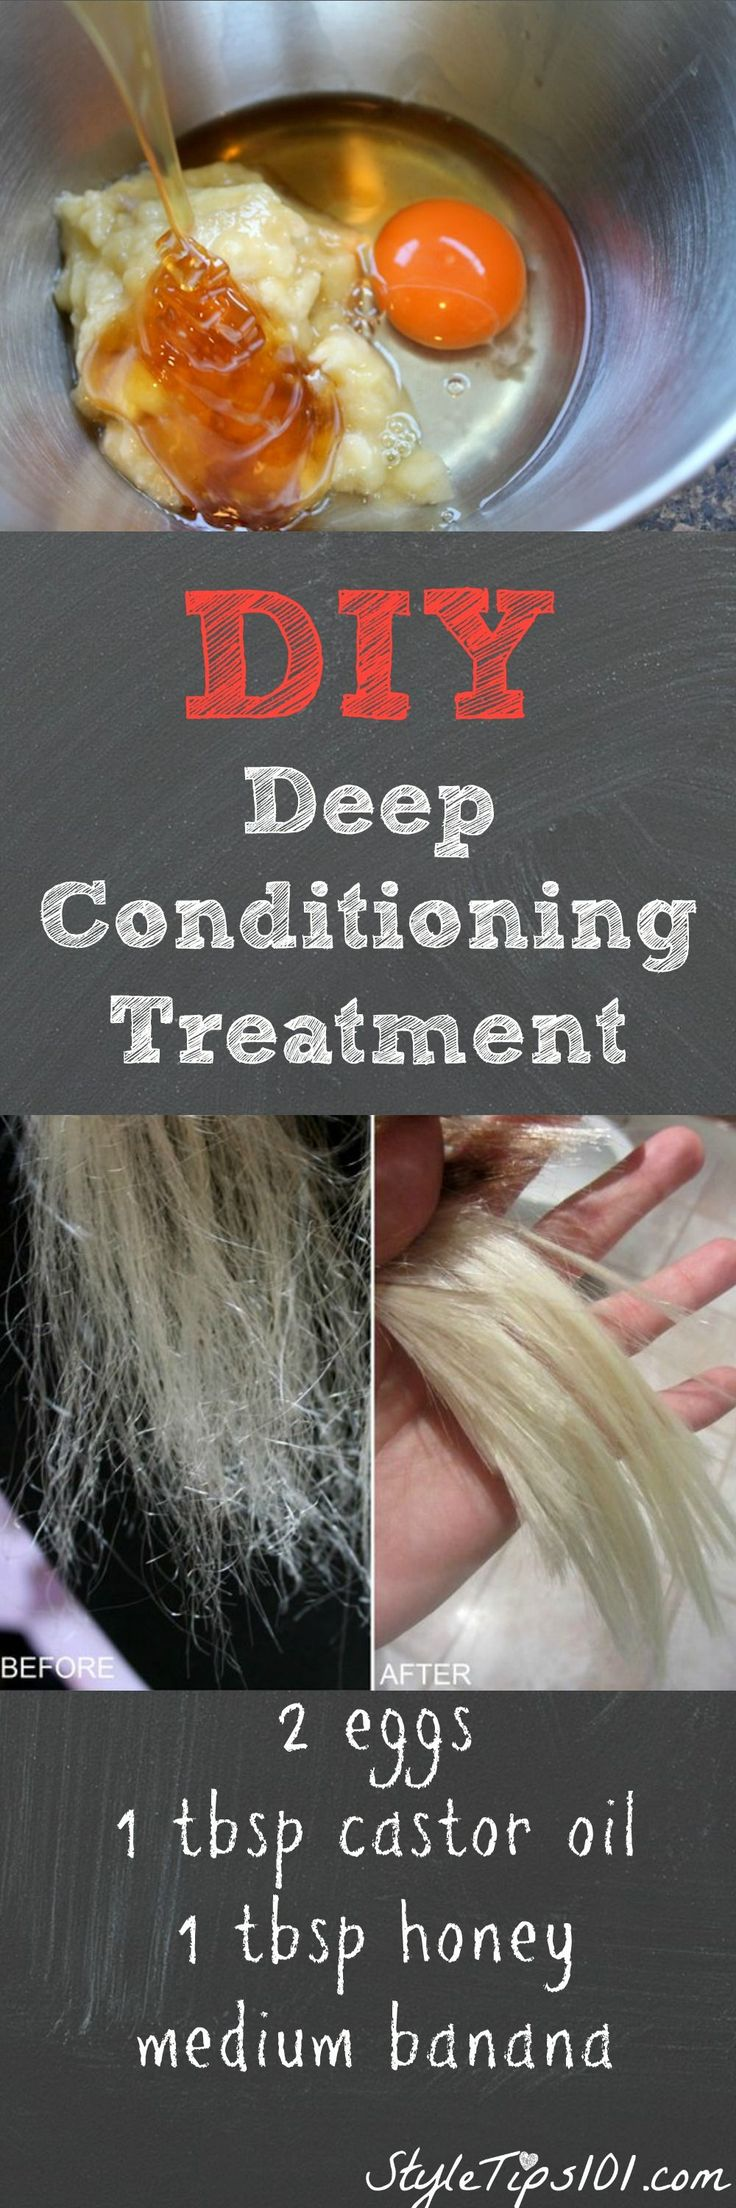 DIY Deep Conditioning Treatment #haircarediy